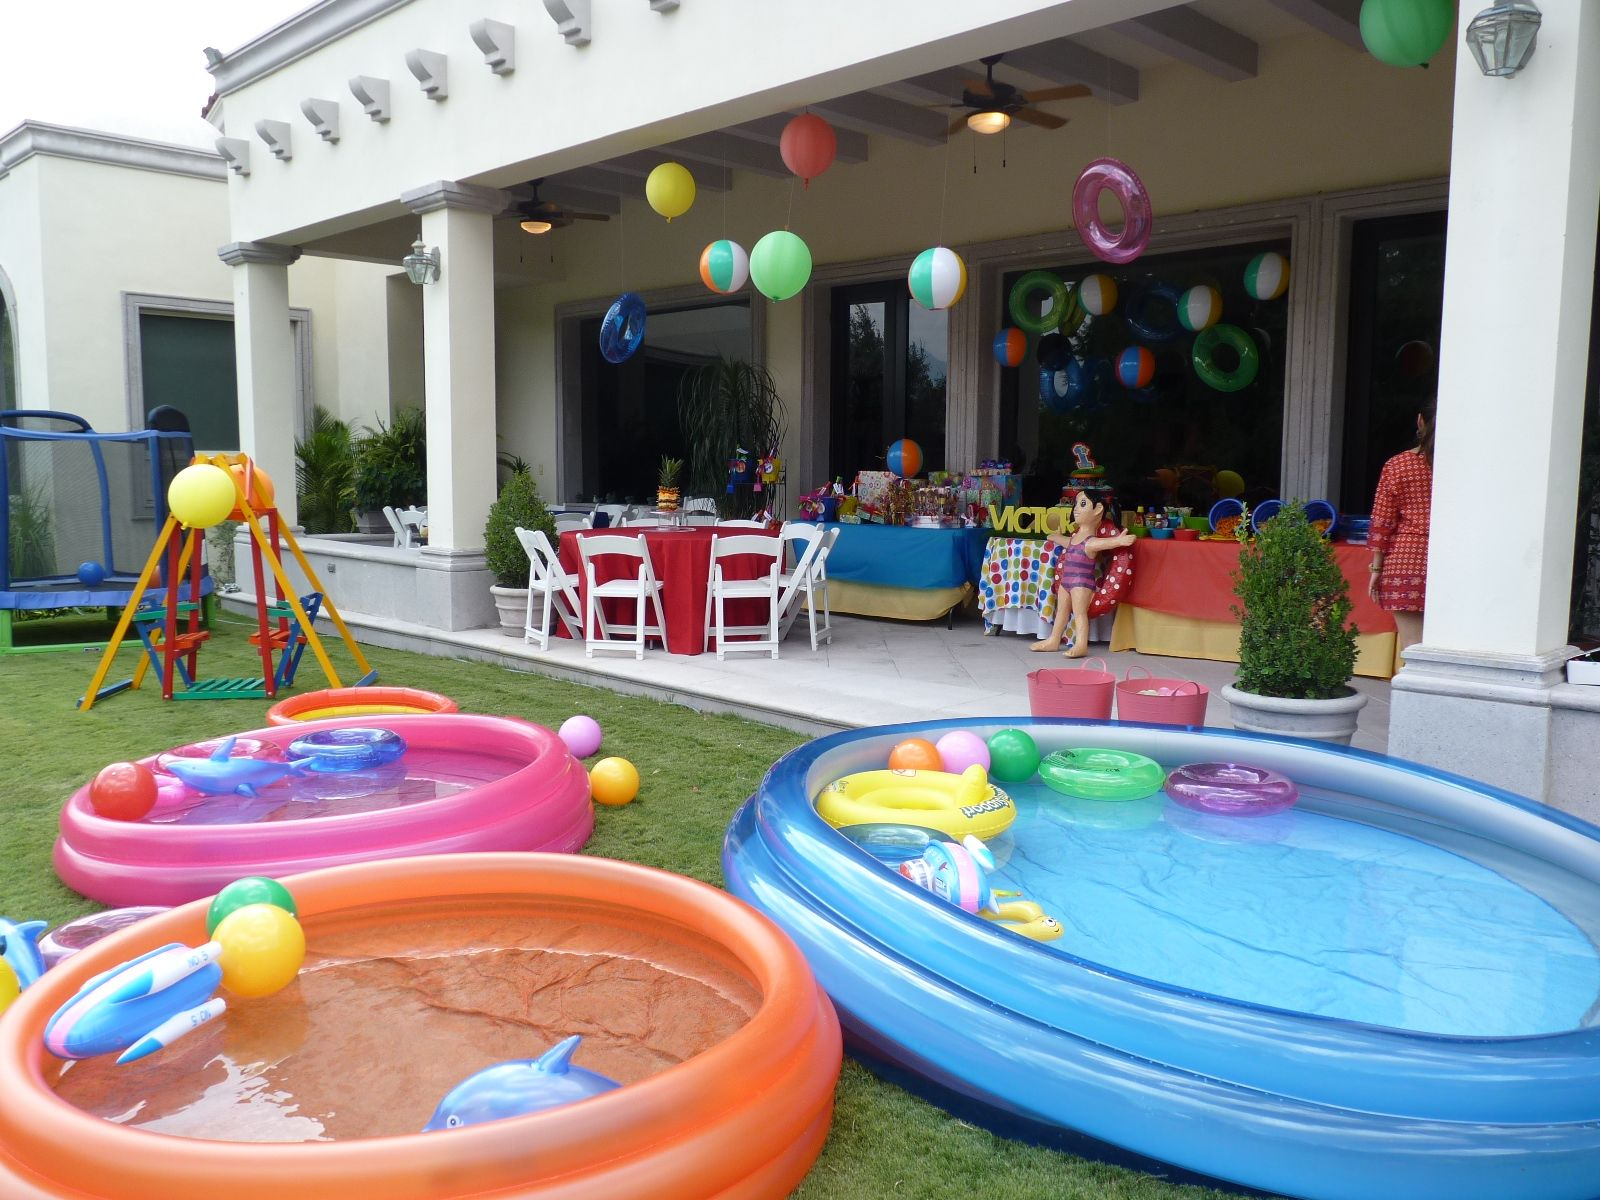 Pool Party Ideas For Kids pool party ideas kids a joint summer birthday pool party pool party noodle race Layout Backyard 1 Kid Pool 2 Medium Pools 1 Large Pool Spiral